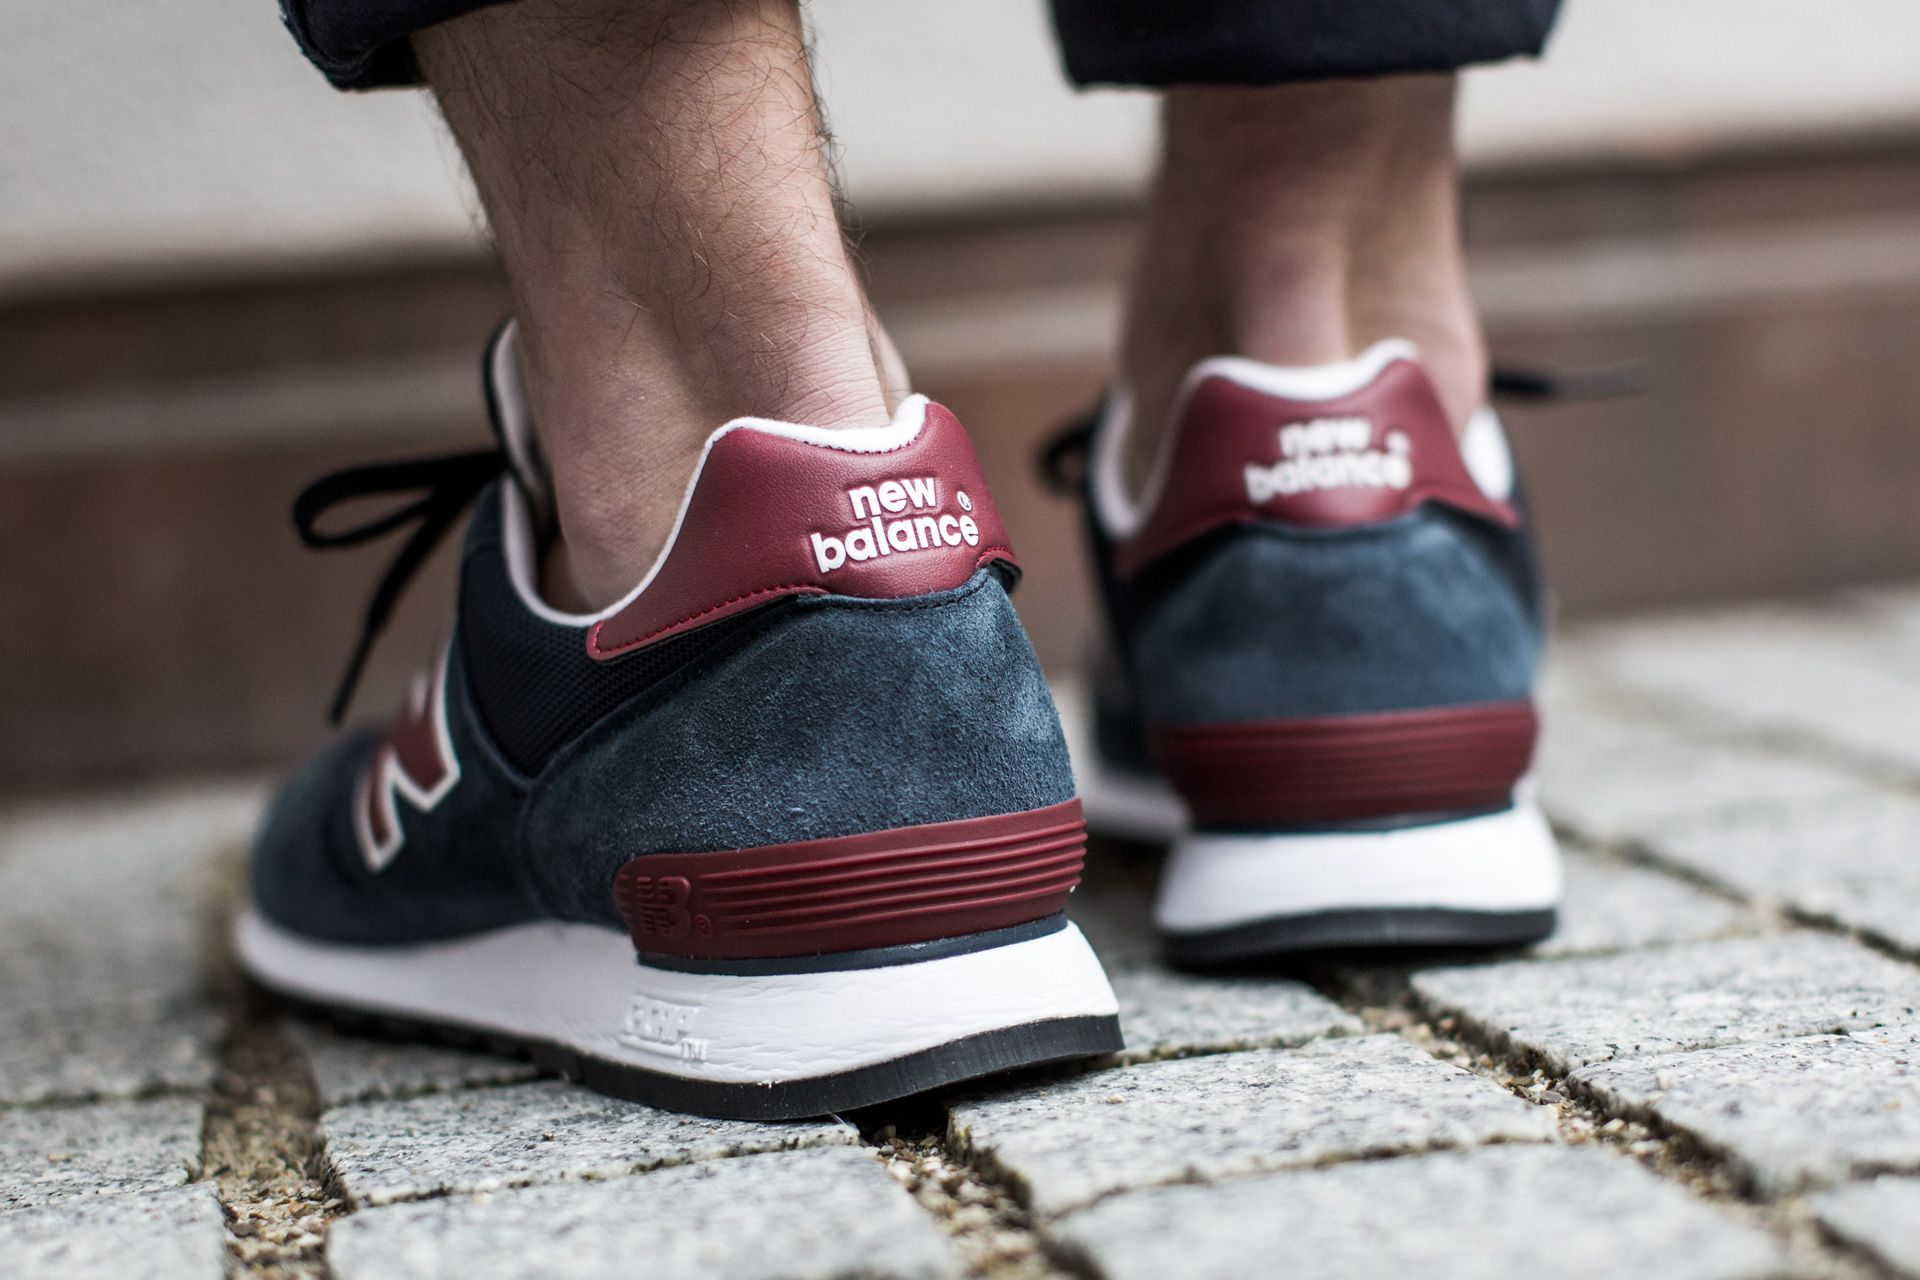 NEW BALANCE M670SNR NAVY/RED available at www.tint-footwear ...